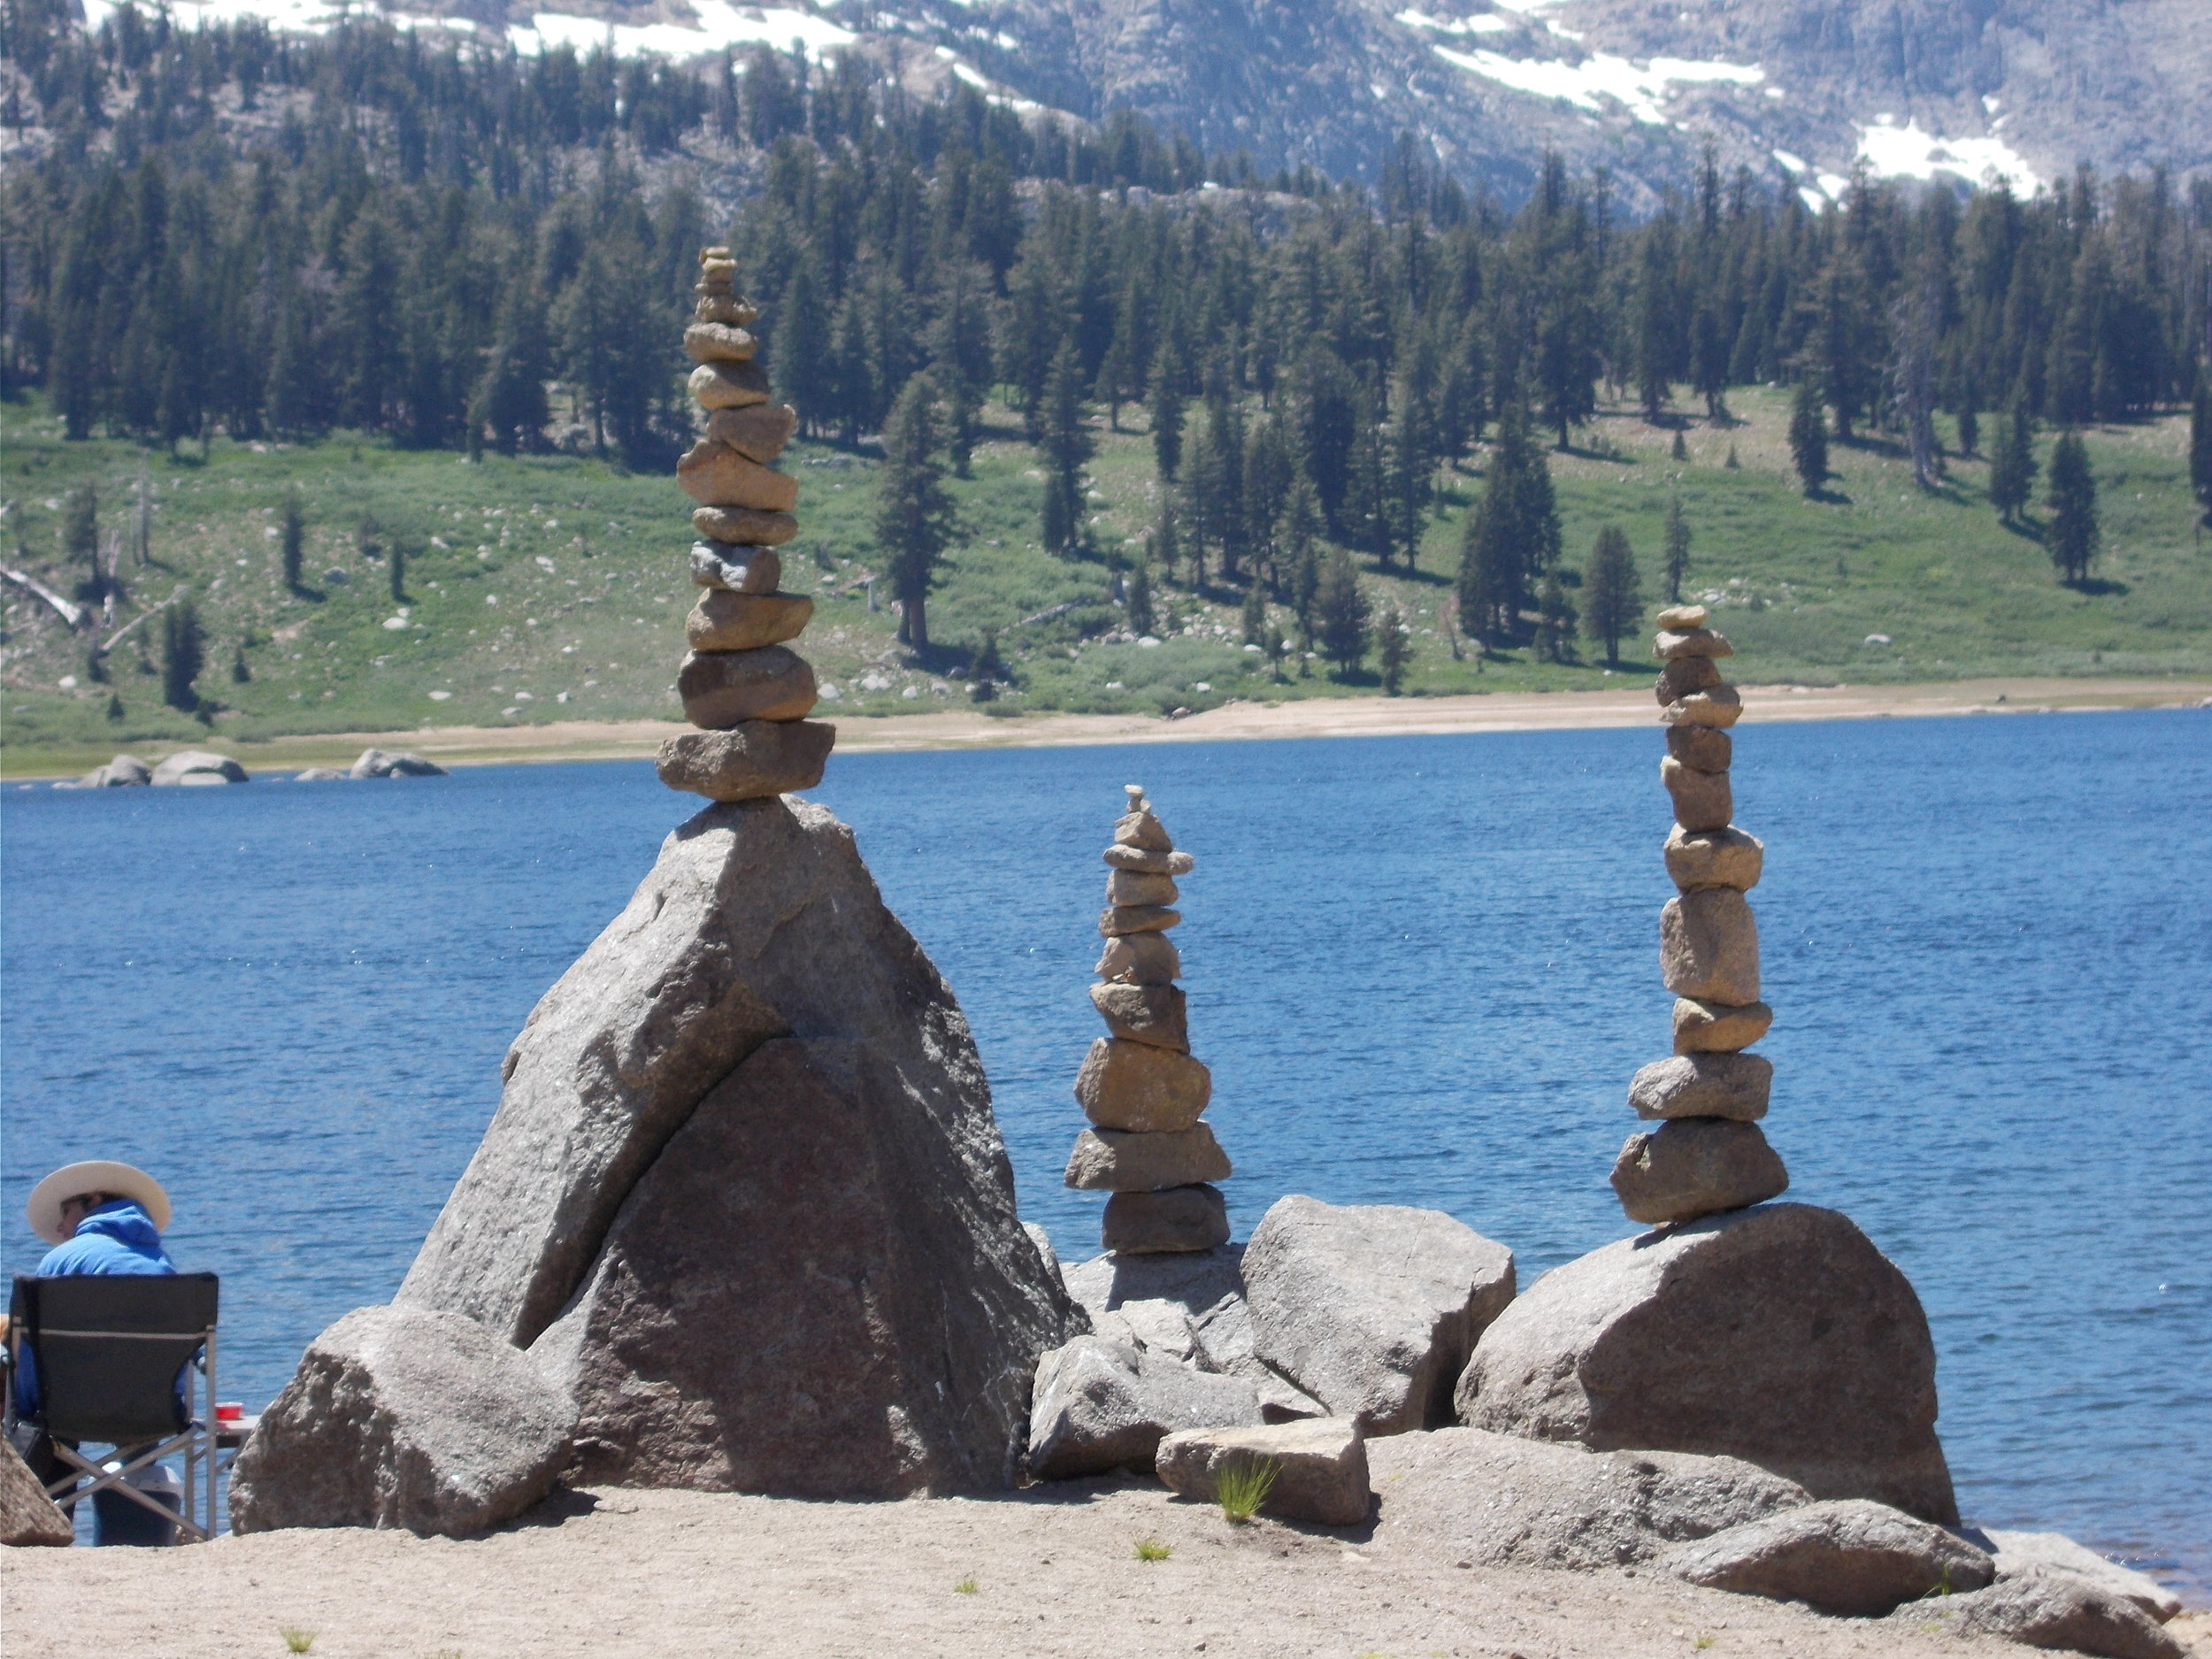 Cairns on the lake